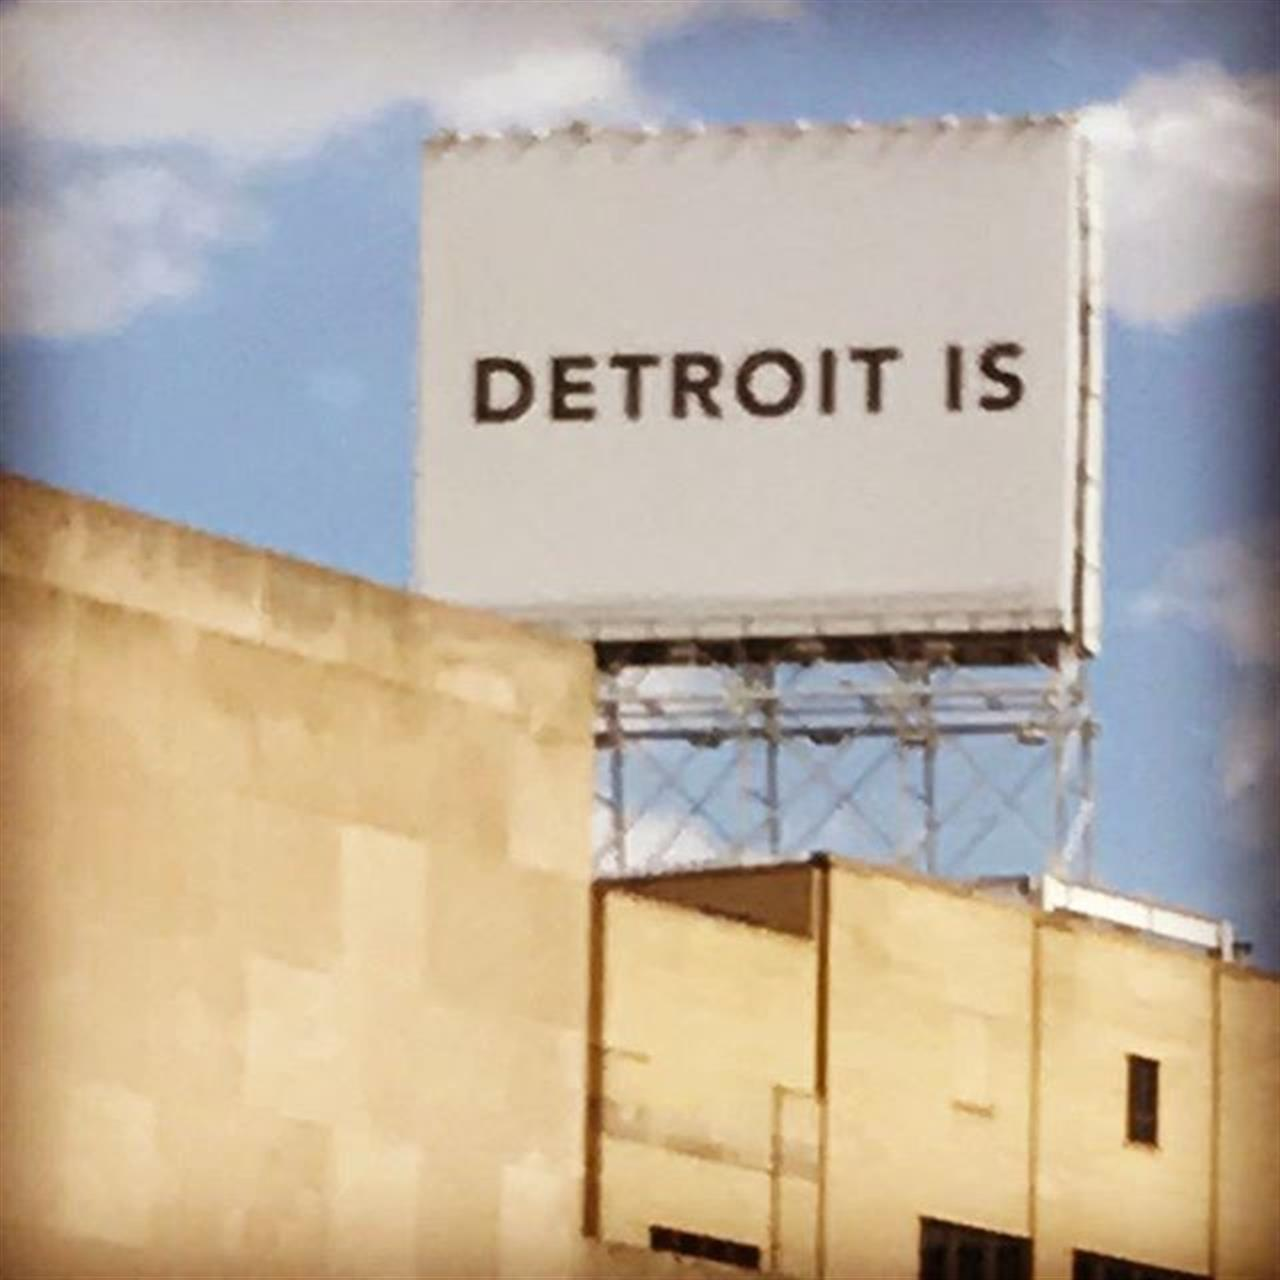 Detroit is... This billboard certainly caught our attention! What thoughts does it conjure up for you about what Detroit is (and can be)? We've love to know! #detroit #michigan #detroitis #thoughtsondetroit #futureofdetroit #leadingrelocal